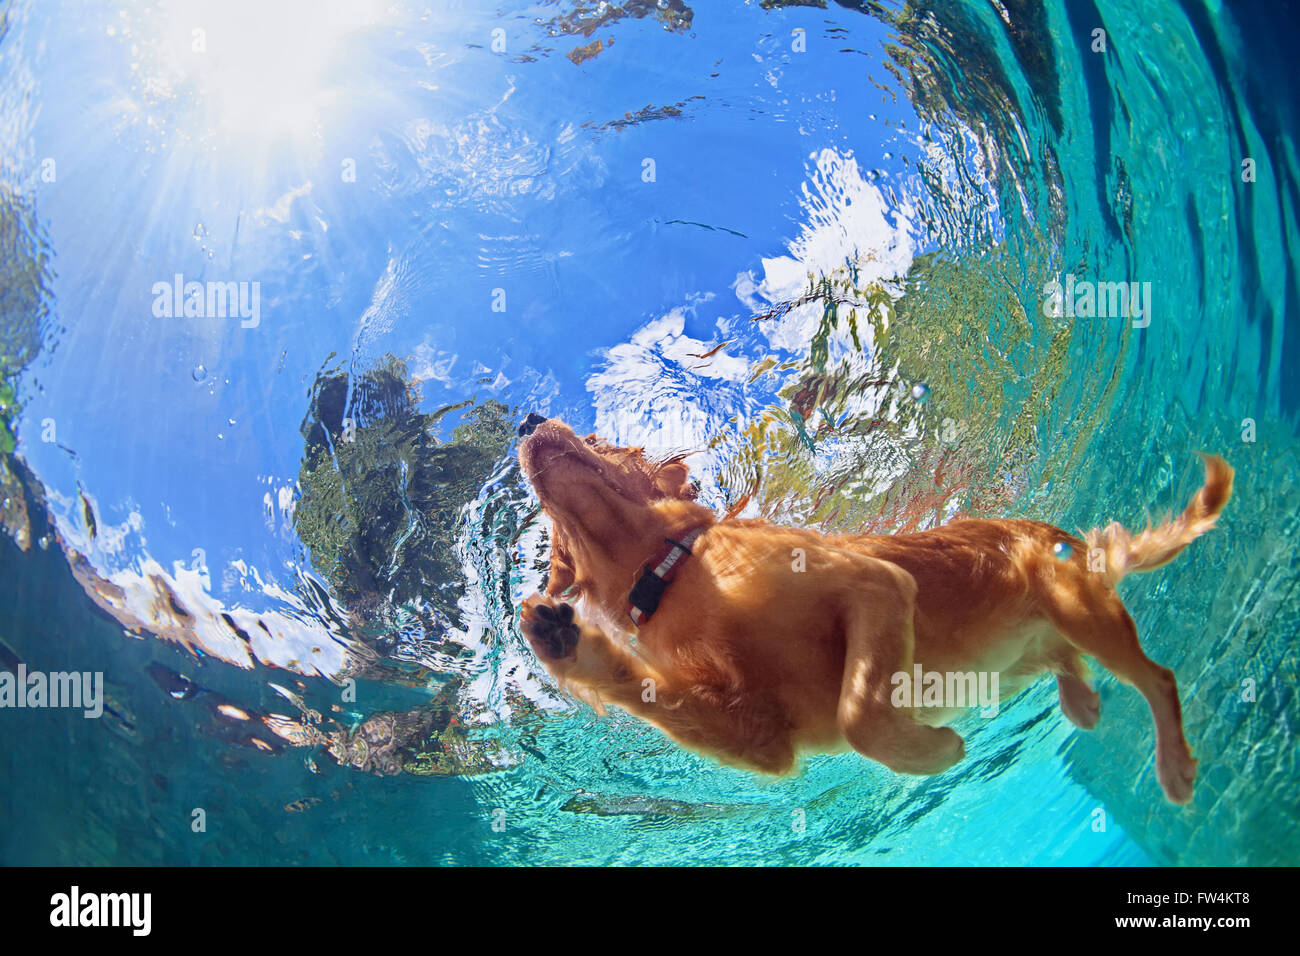 Underwater photo of golden labrador retriever puppy in outdoor swimming pool play with fun - jumping and diving Stock Photo